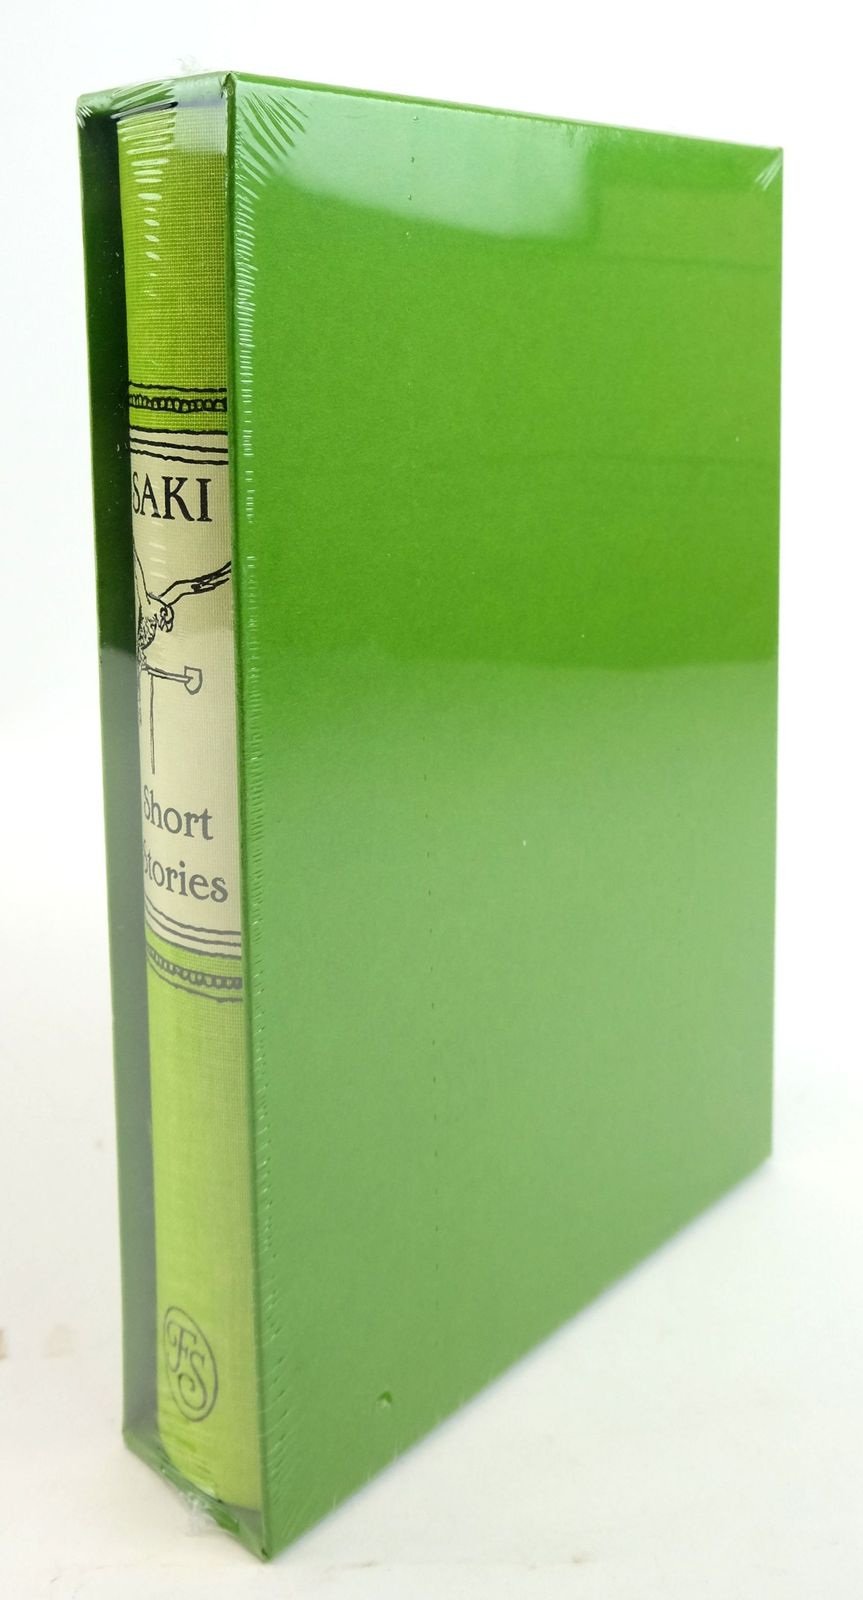 Photo of SHORT STORIES written by Saki, illustrated by Lancaster, Osbert published by Folio Society (STOCK CODE: 1820244)  for sale by Stella & Rose's Books